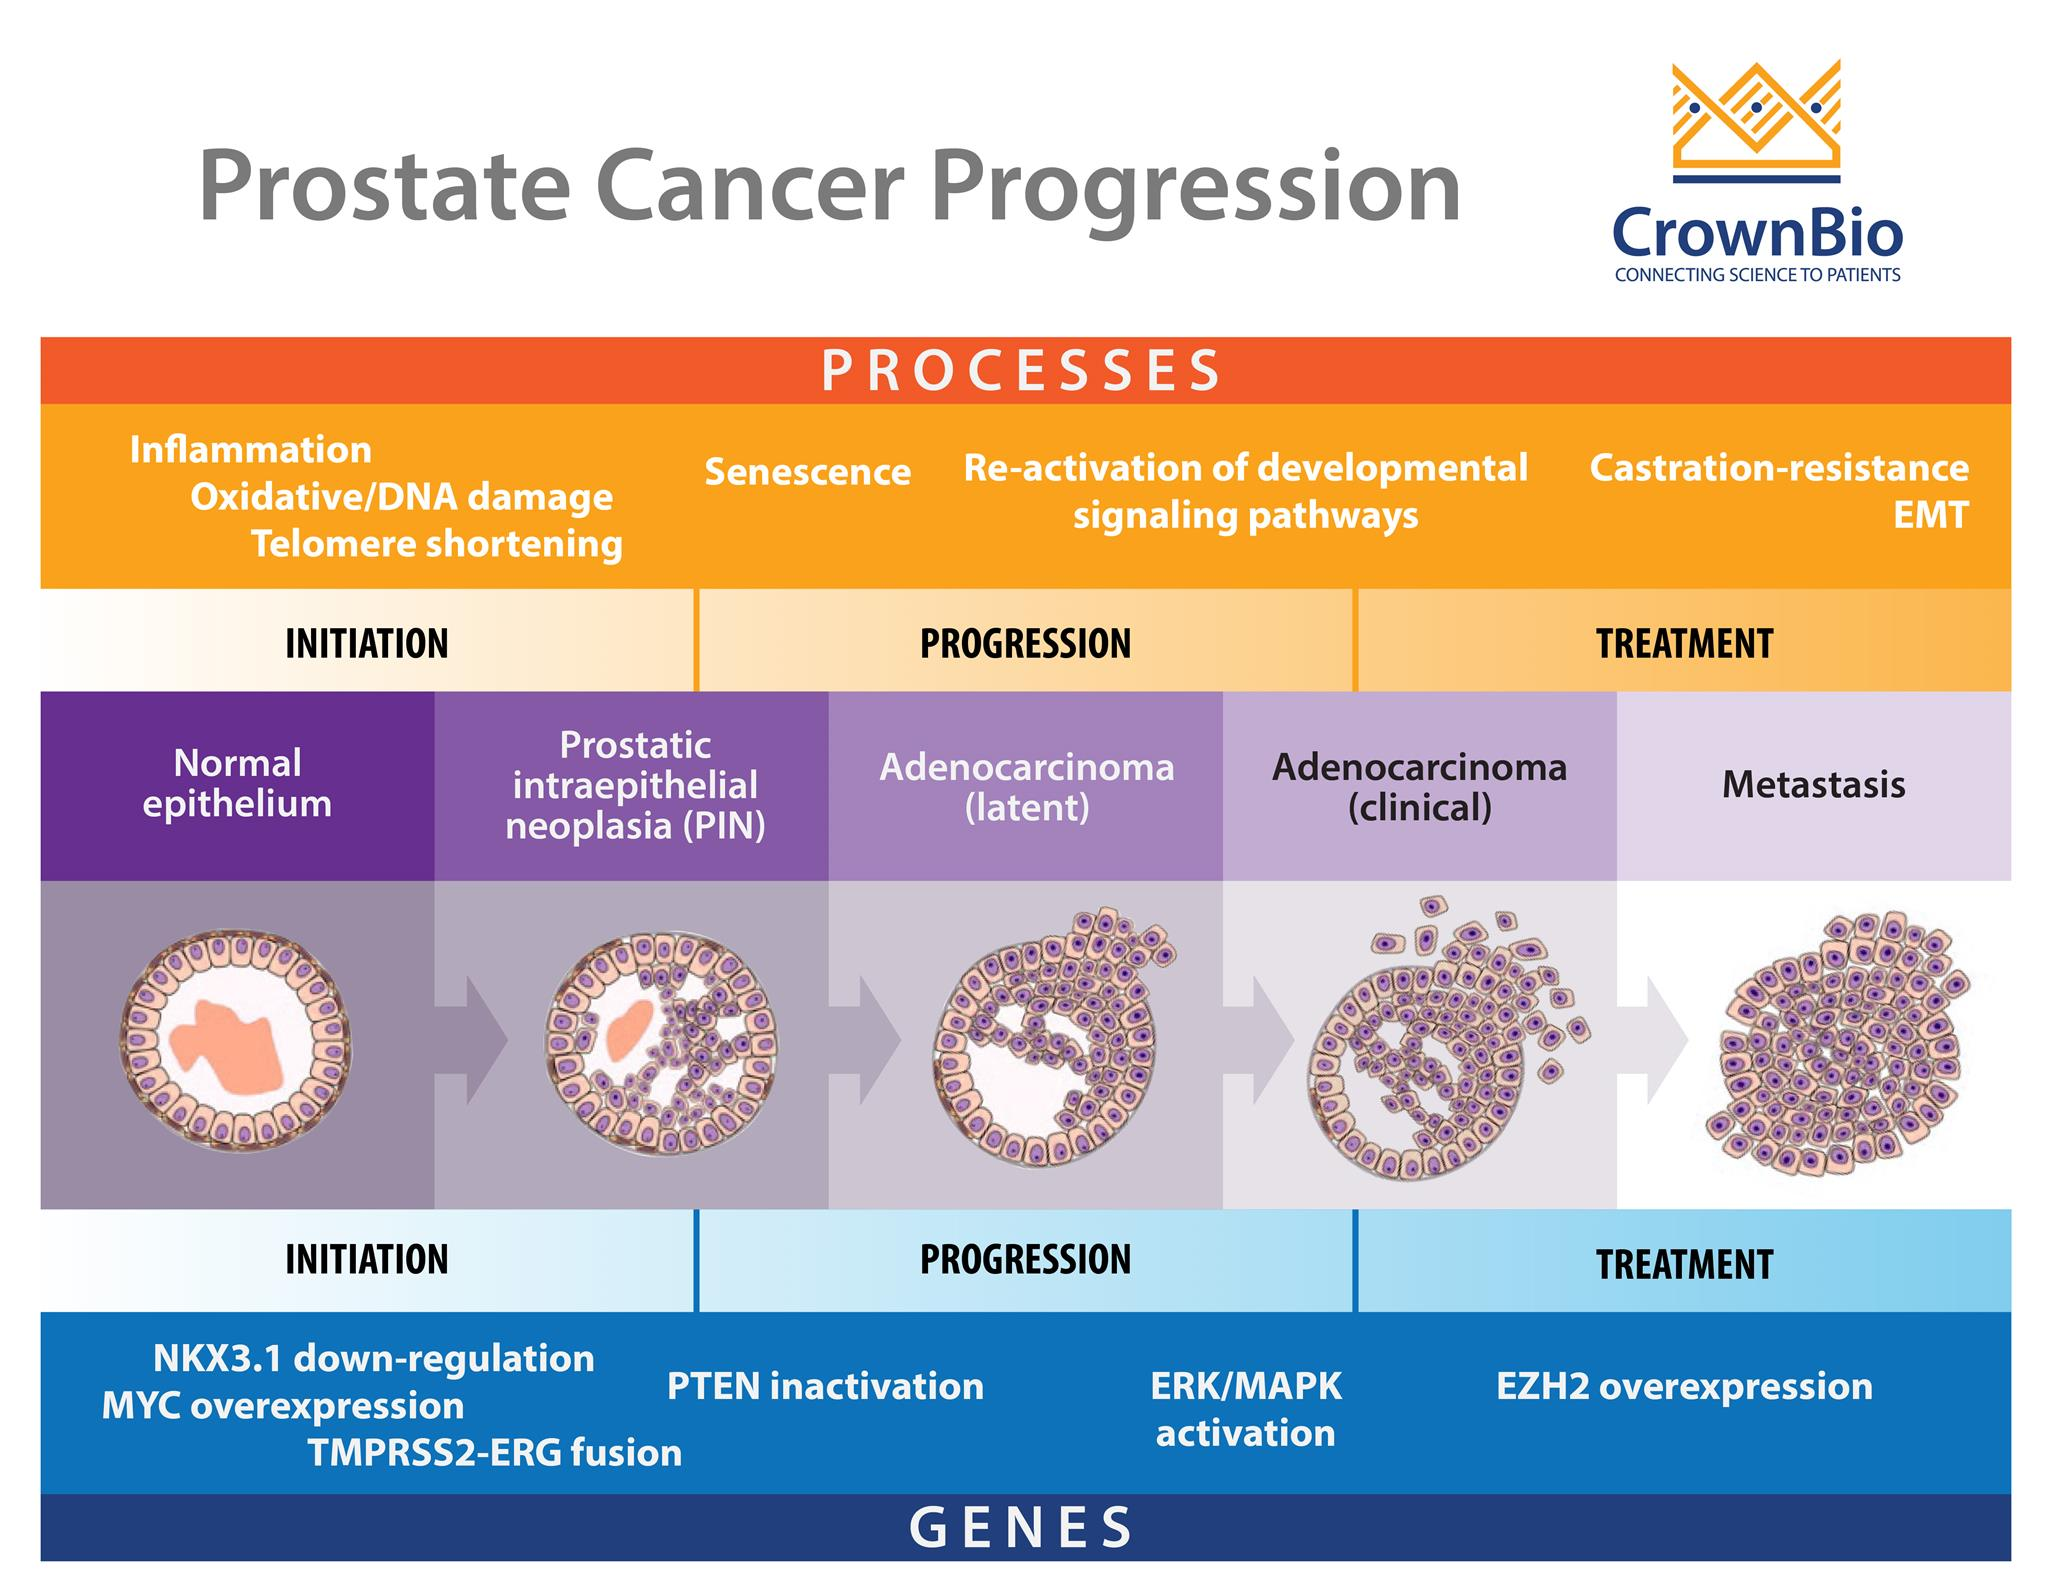 progression of prostate cancer from initiation to metastatic, castration resistant disease, including genetic alterations and cellular processes